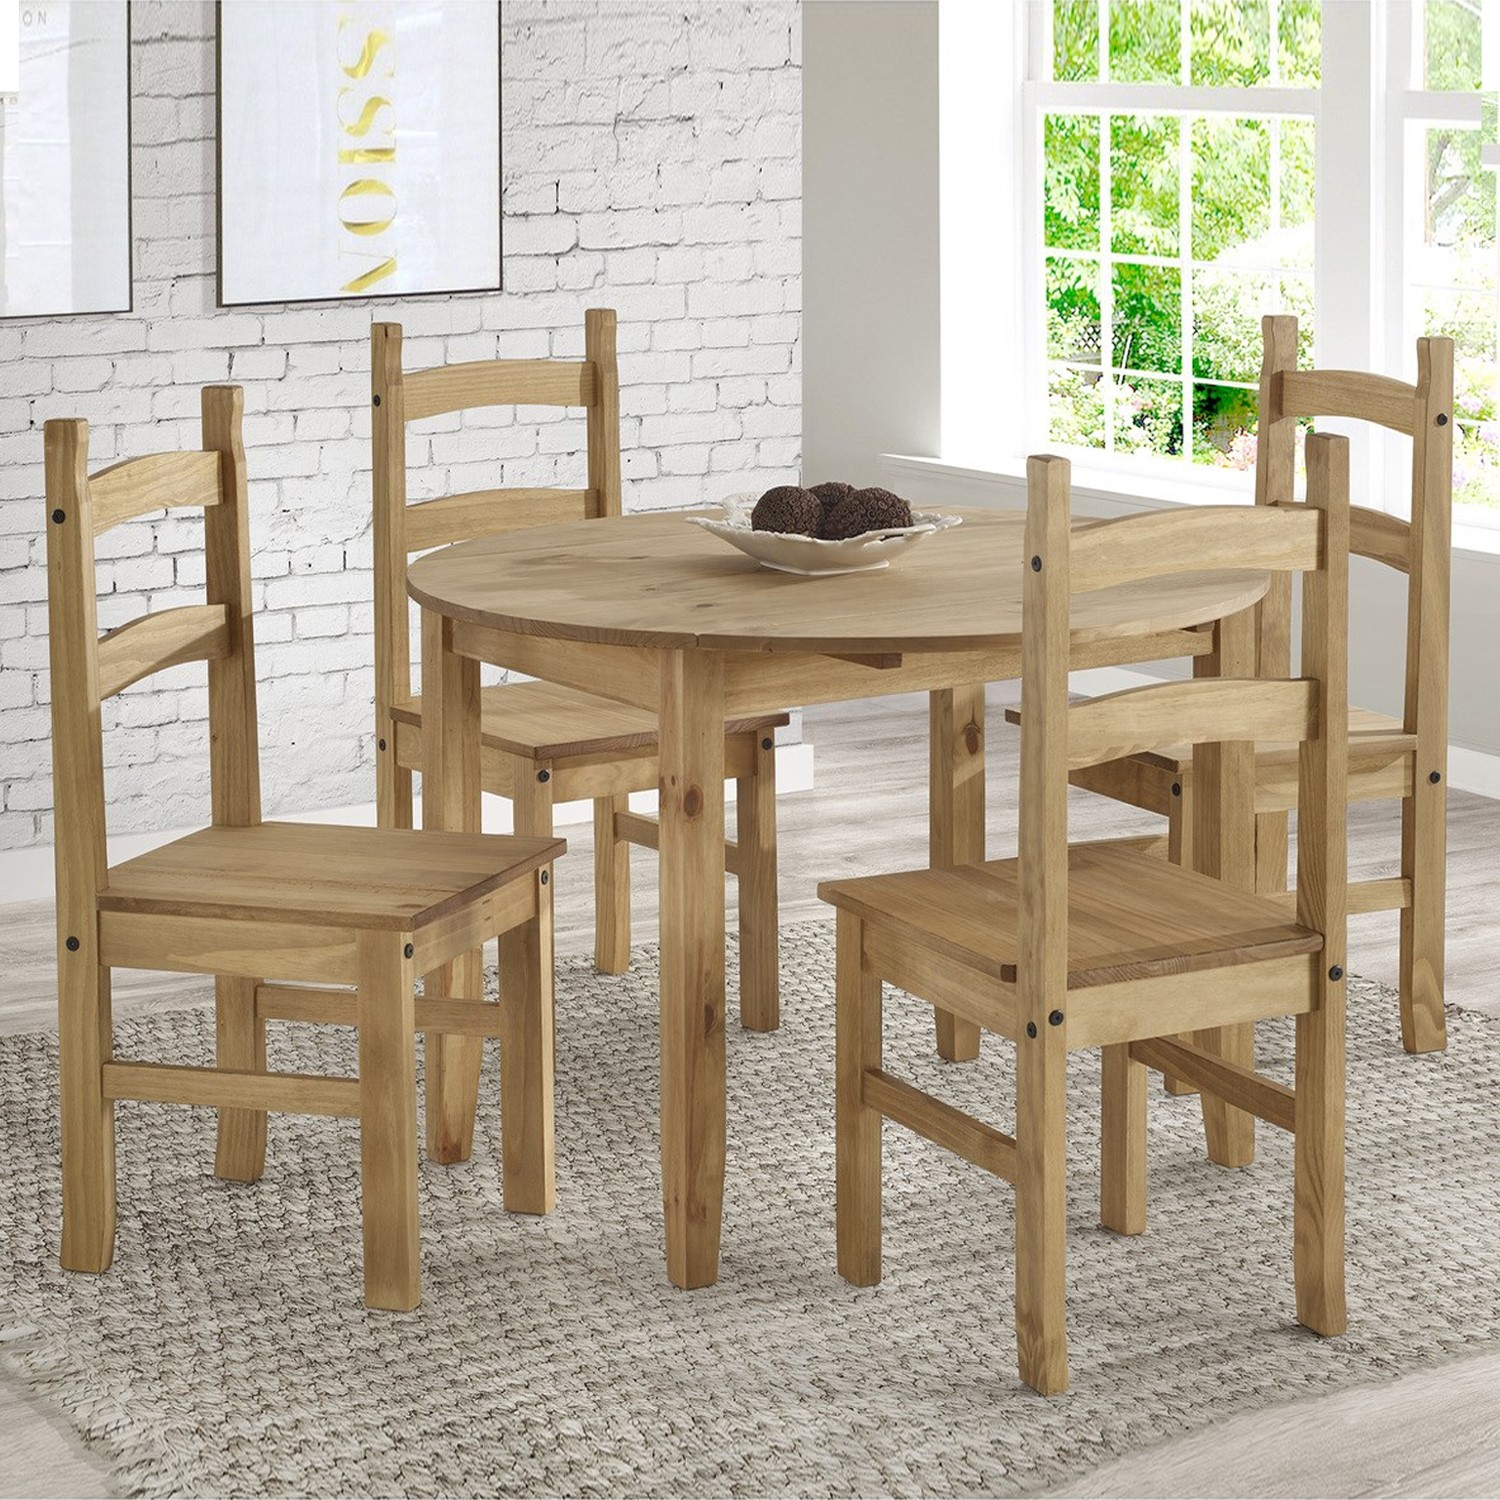 Corona Mexican Solid Pine 4 Seater Round Drop Leaf Dining Table Set